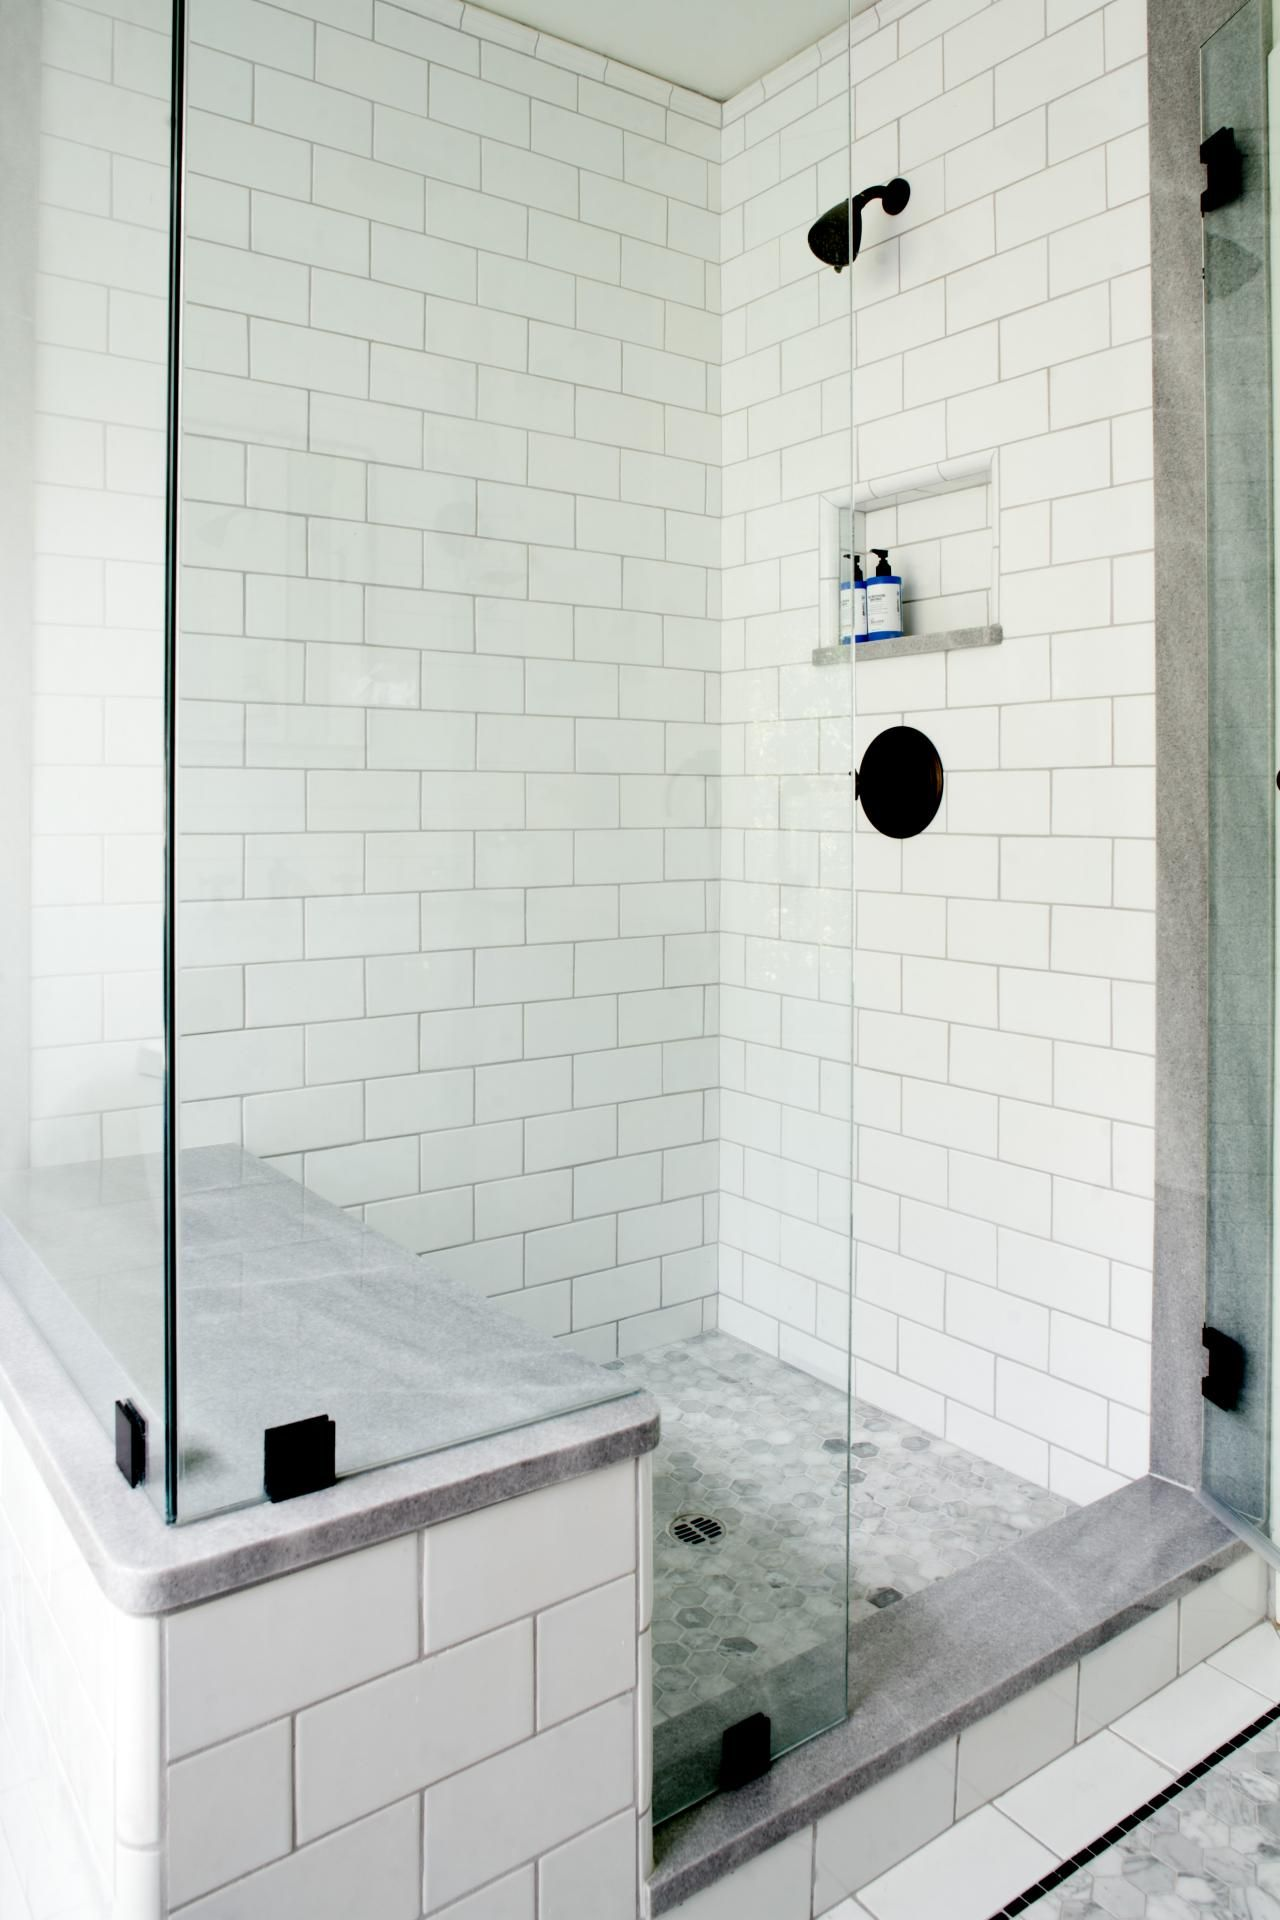 How to plan a major reno project without going over budget hgtv budgeting and decorating - Types of showers for your home ...